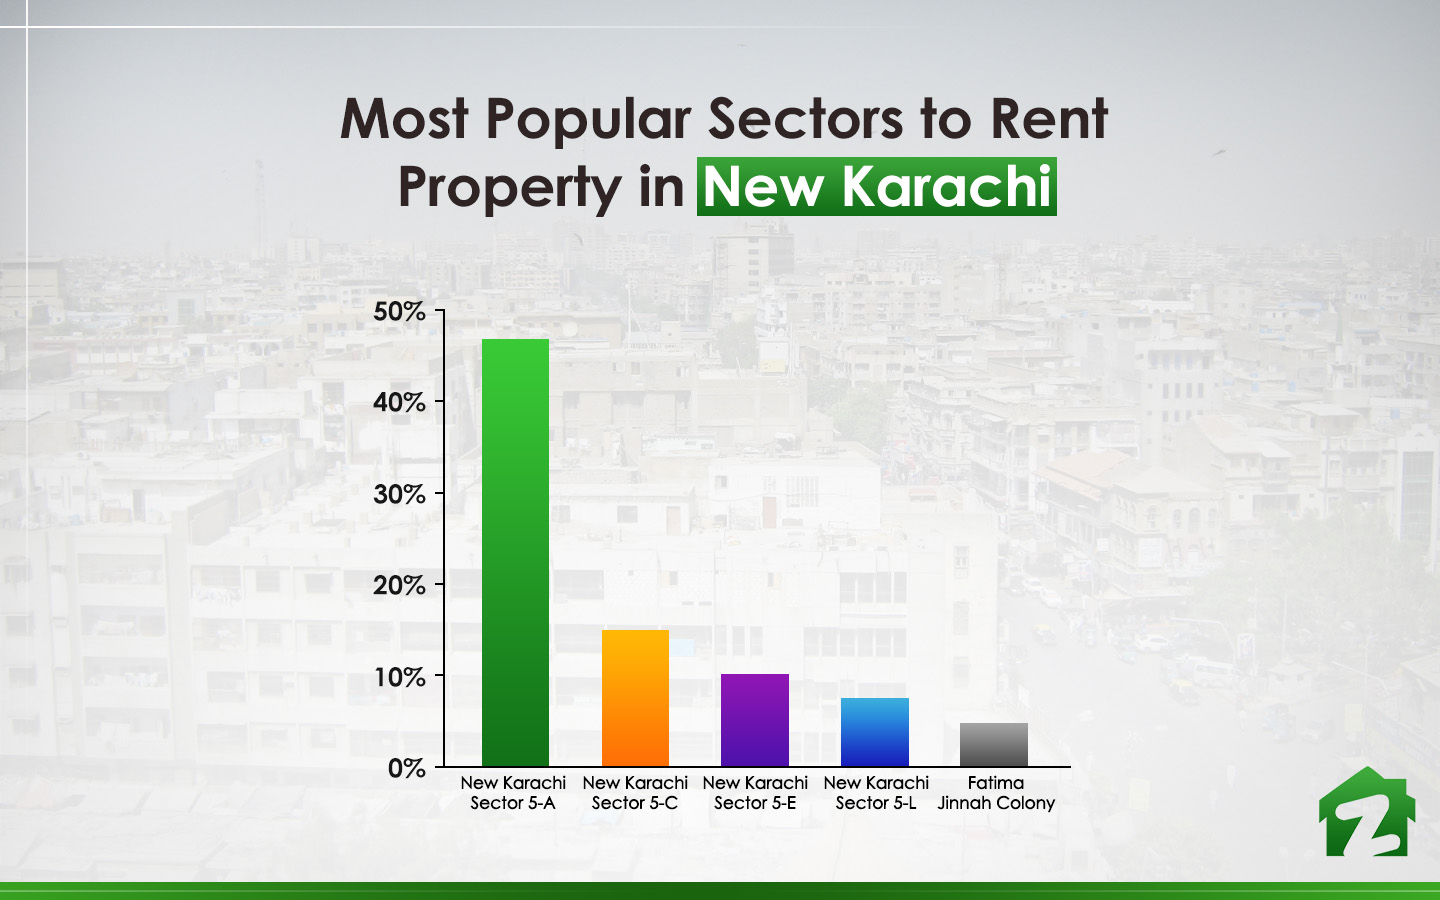 Top 5 sectors to rent property in New Karachi